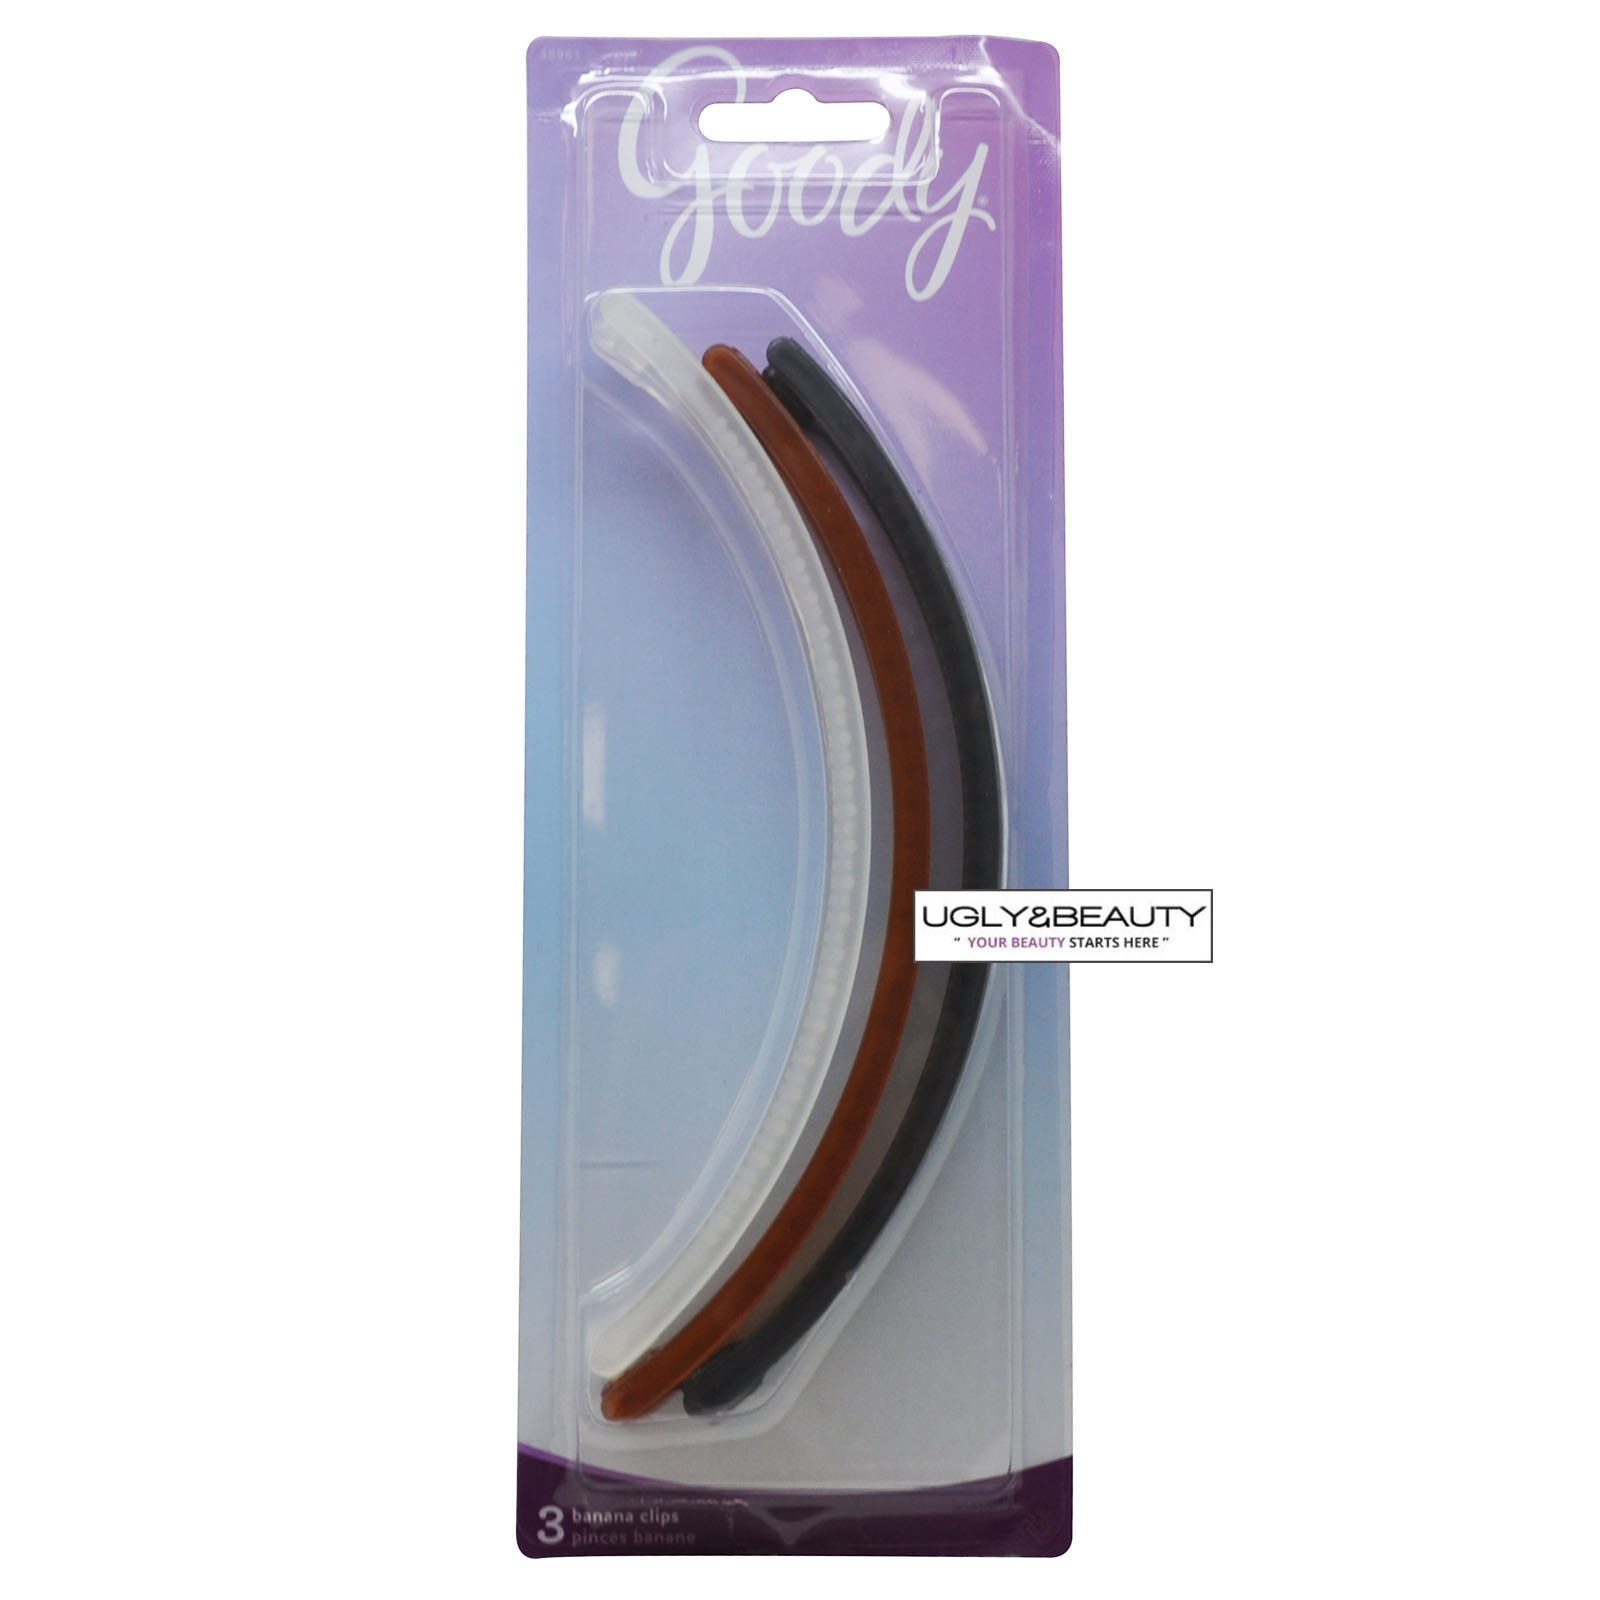 "Goody Clincher Comb 7"" Model #35963 - 2 Packs"